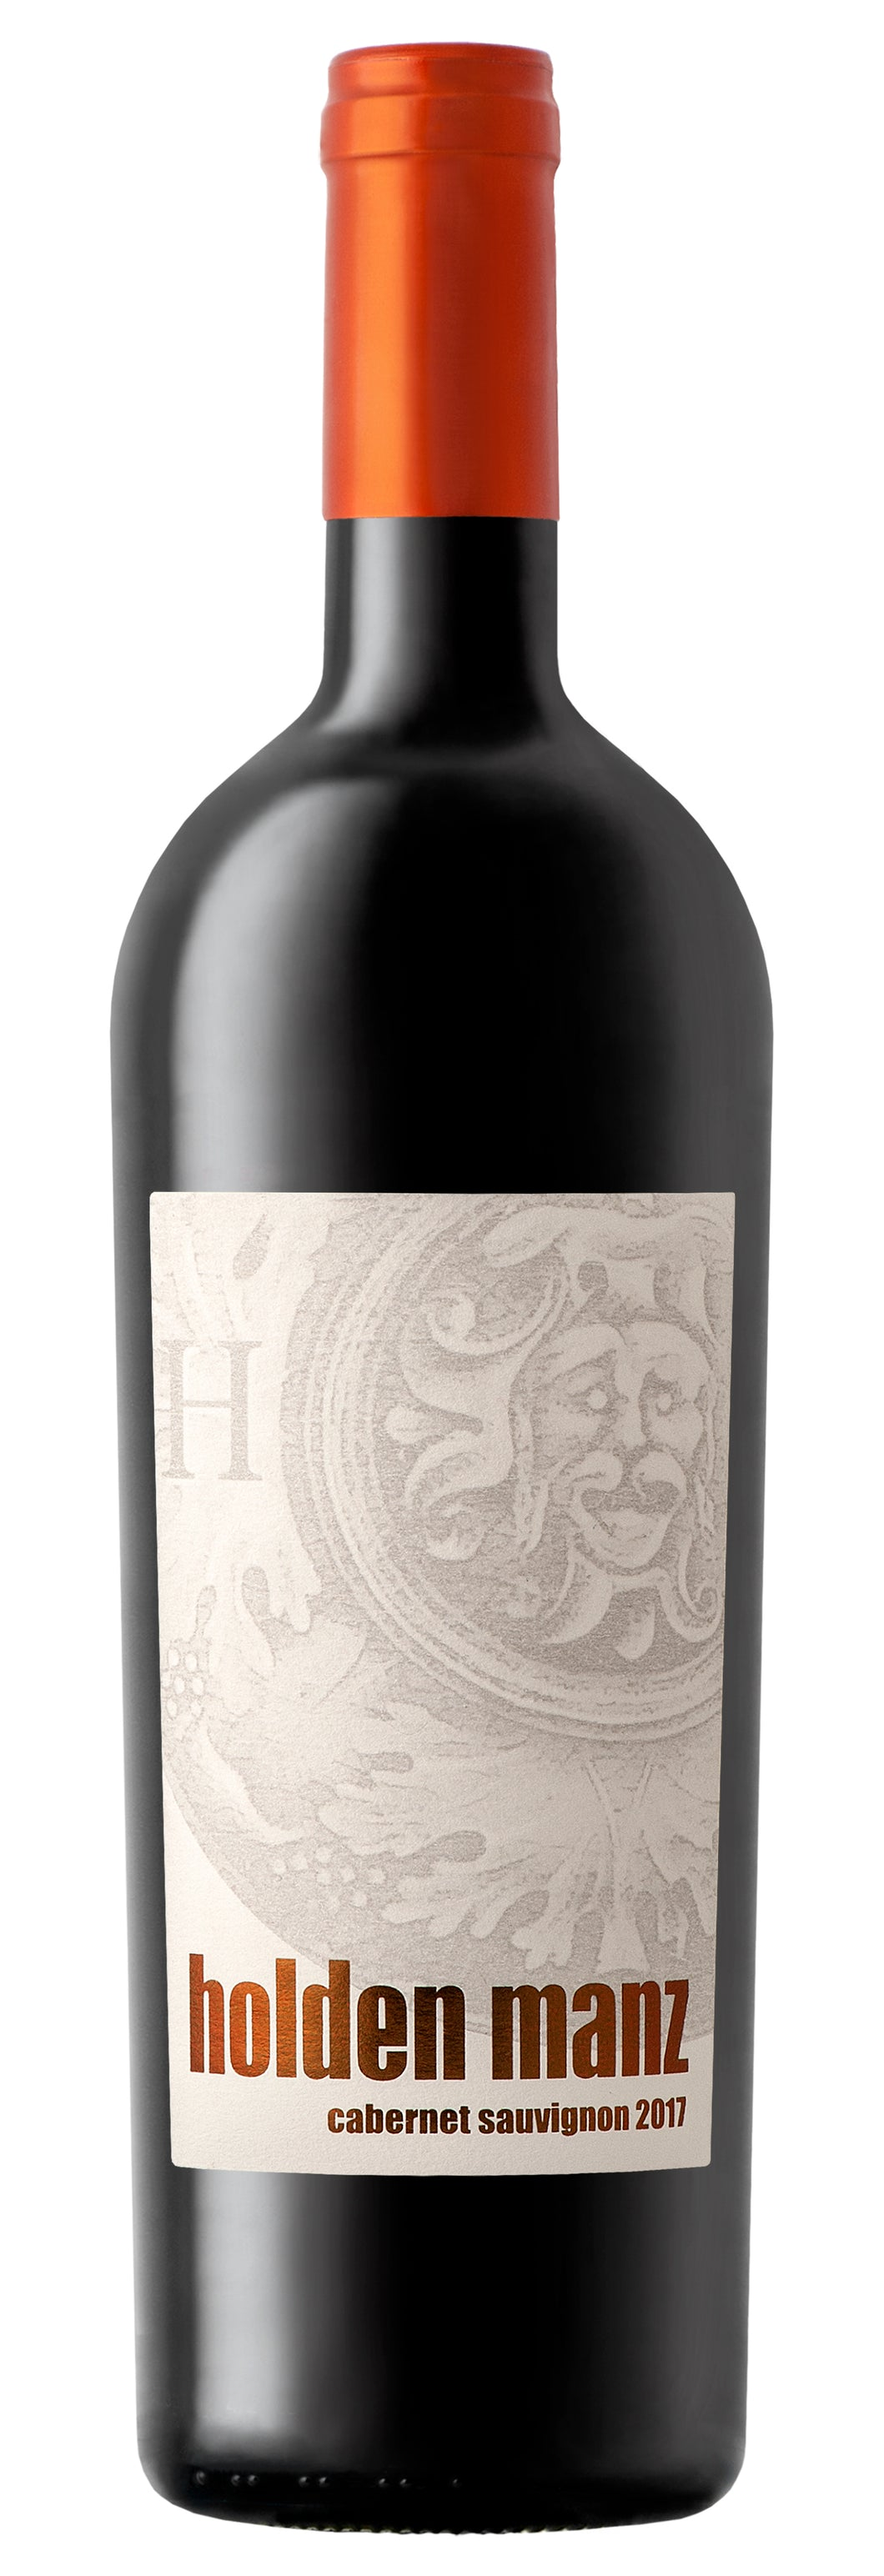 Holden Manz Cabernet Sauvignon 2017 Six Bottle Case